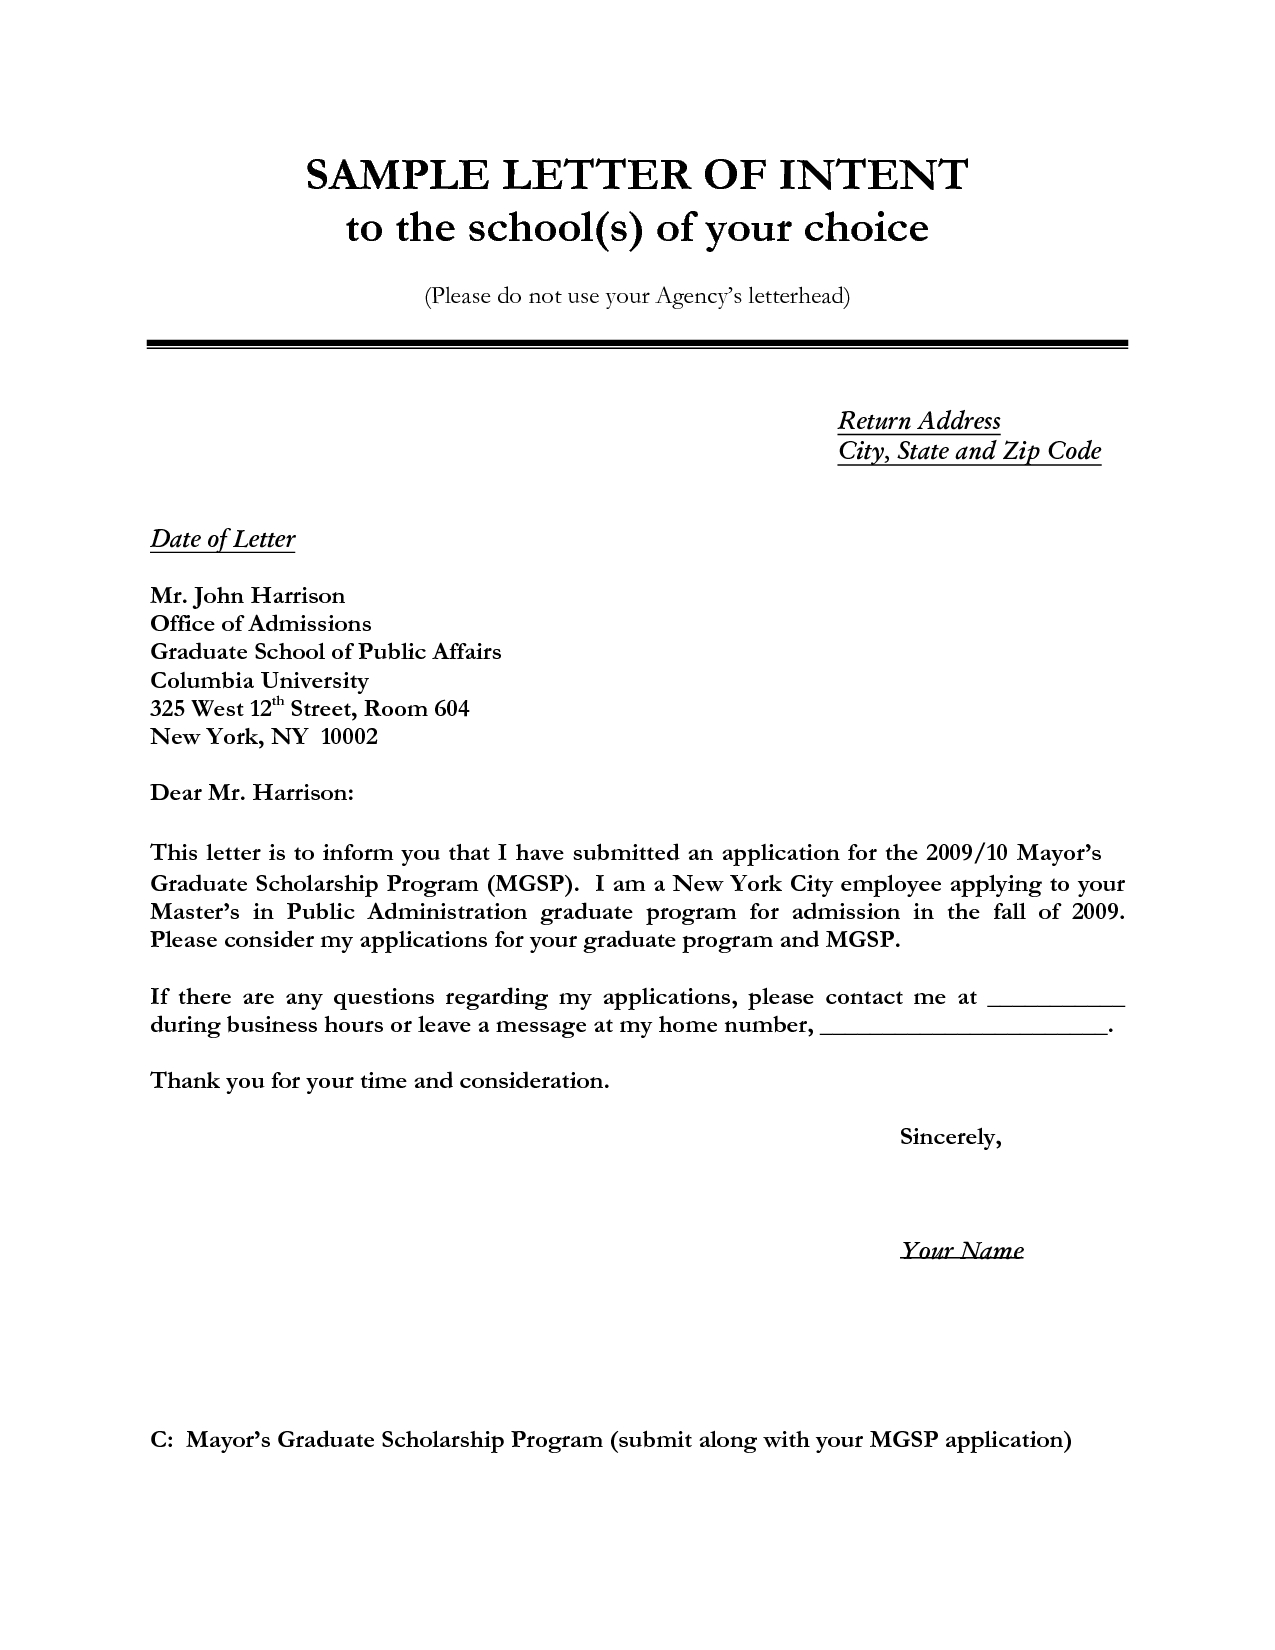 Legal Letter Of Intent Template - Letter Of Intent Sample